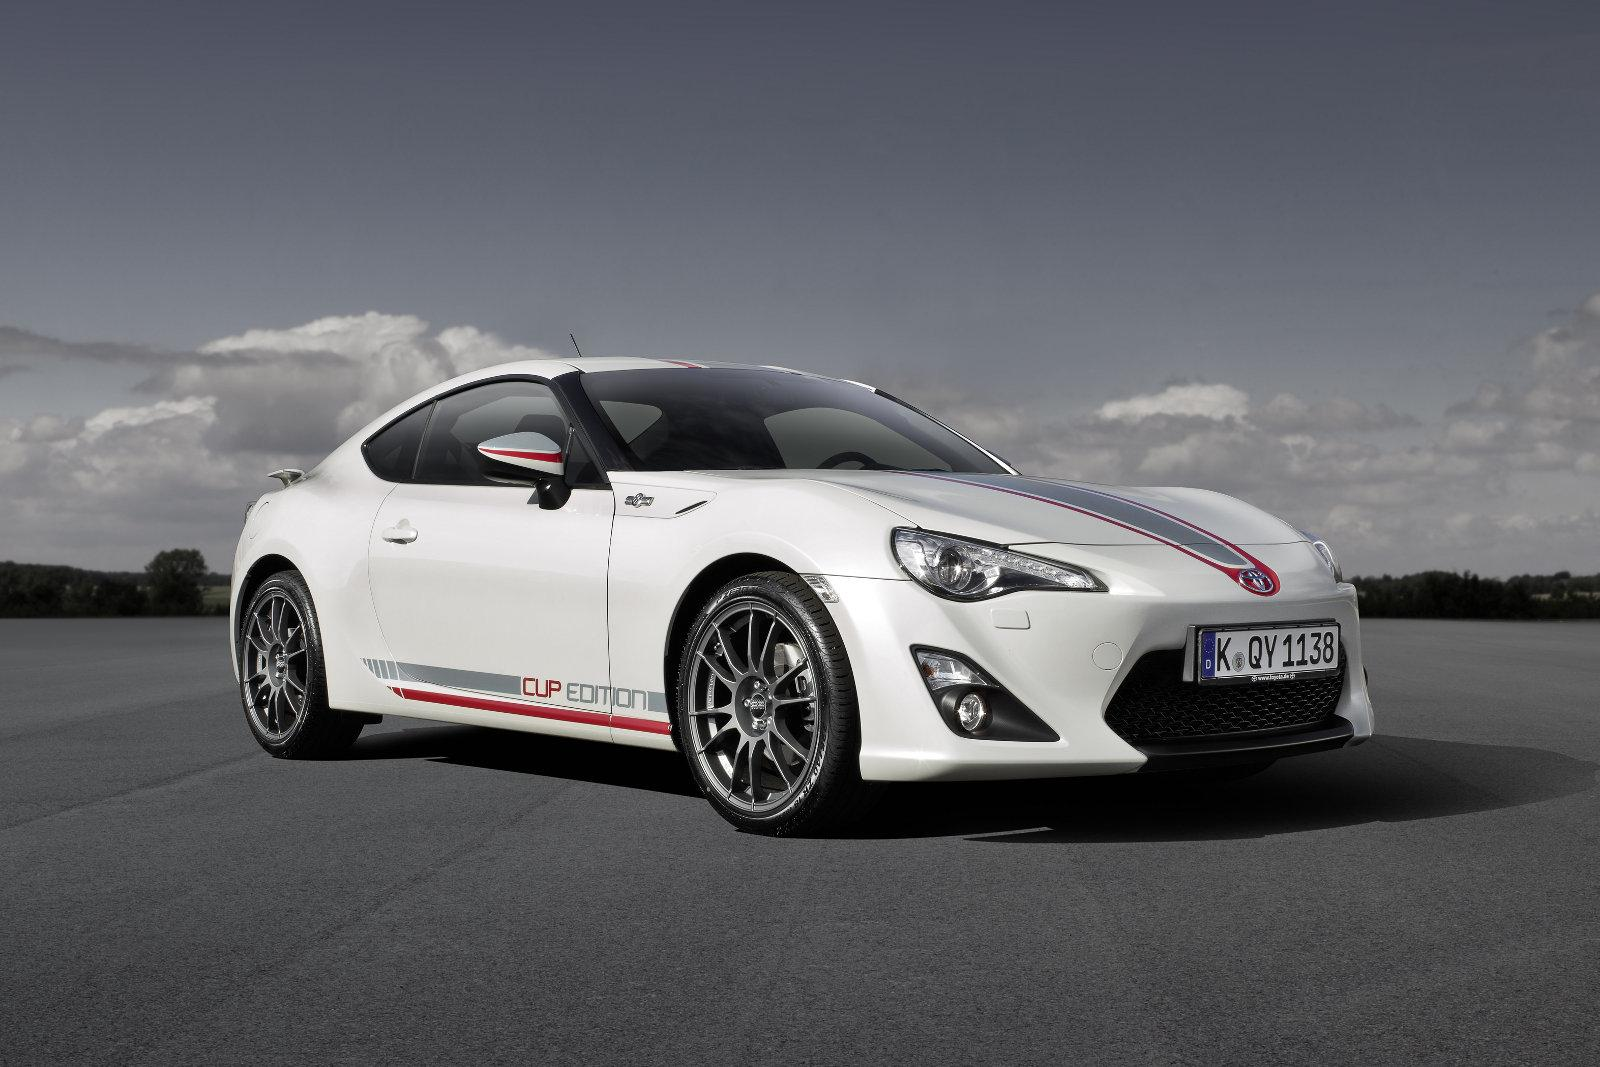 toyota gt86 cup edition 2013 dark cars wallpapers. Black Bedroom Furniture Sets. Home Design Ideas